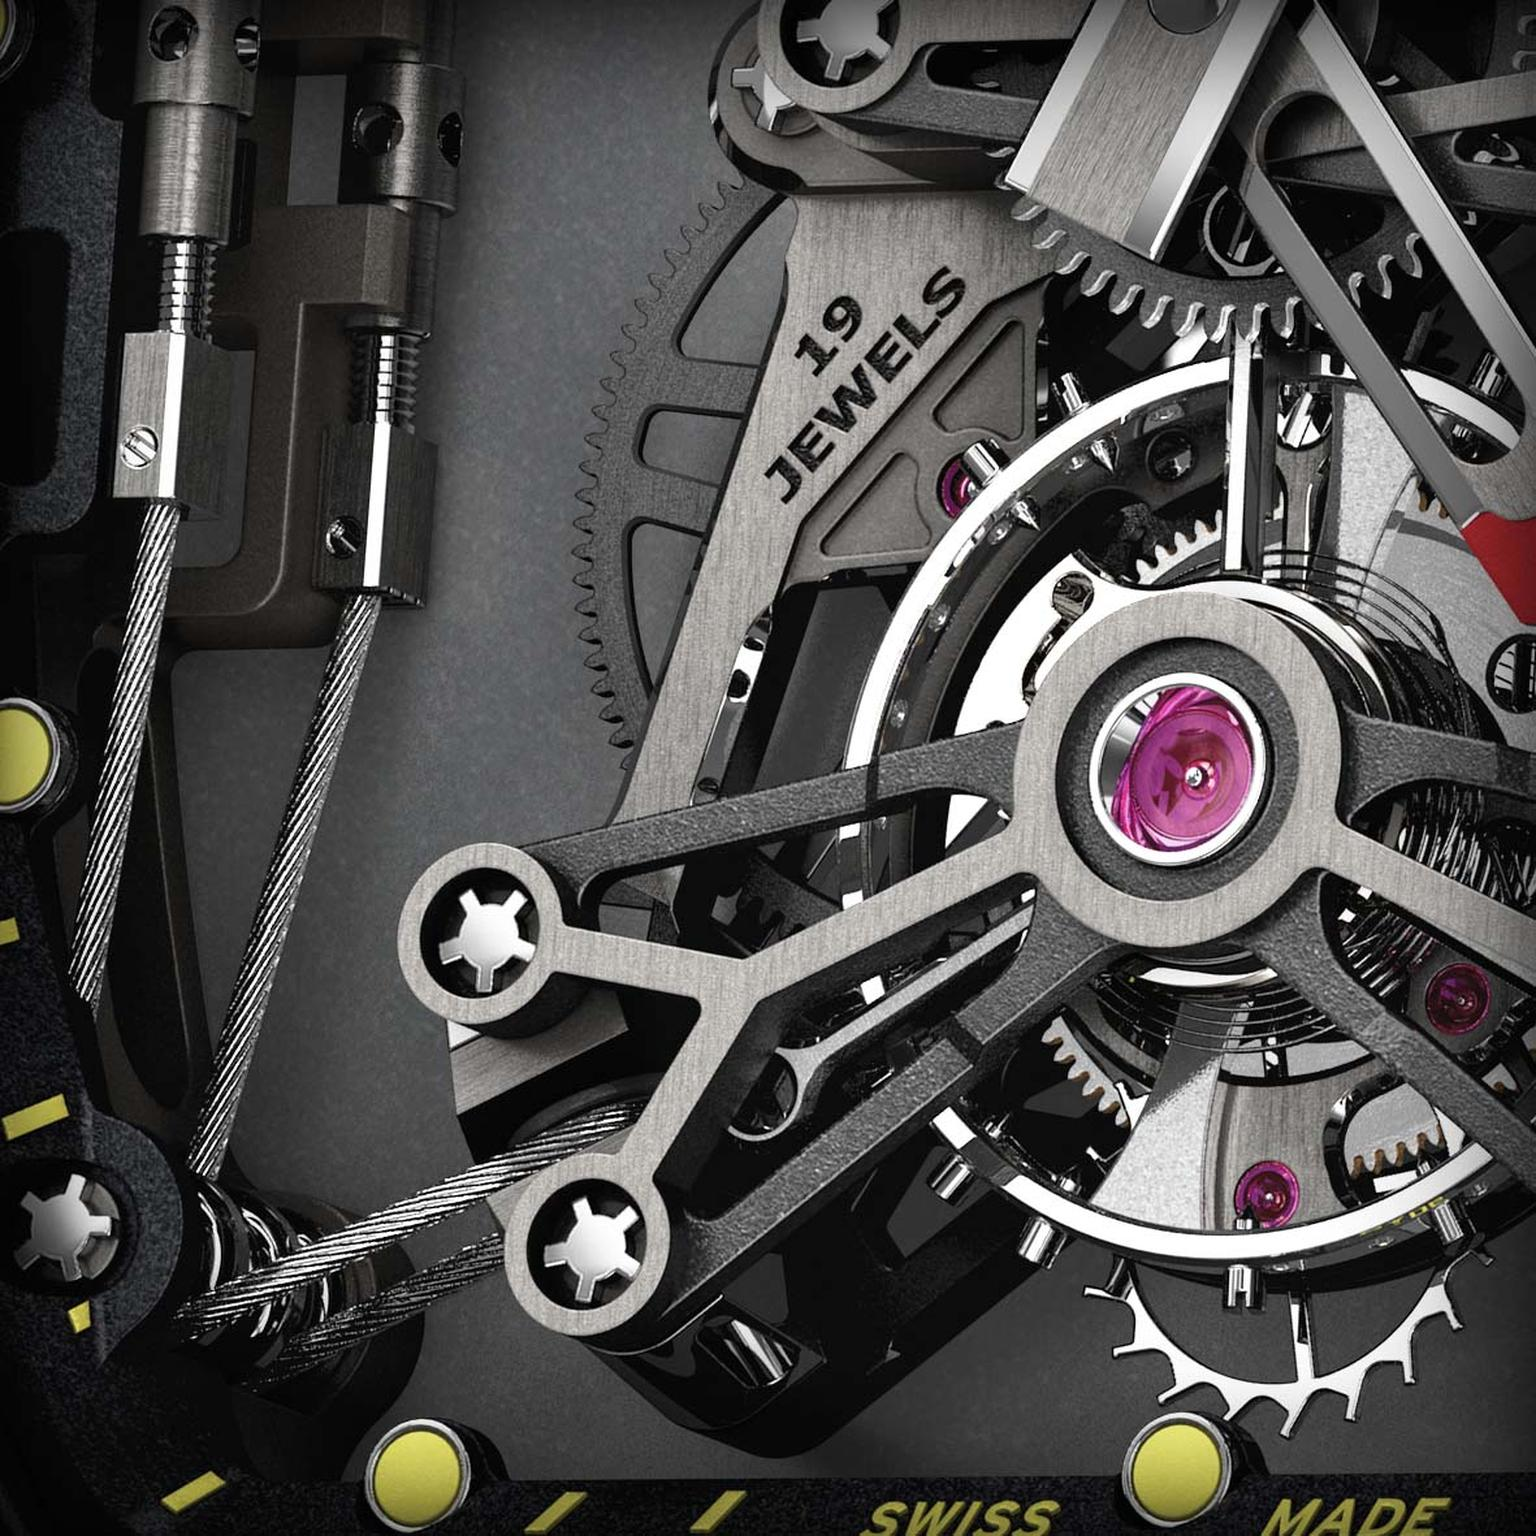 The movement of the Richard Mille RM 27-01 Tourbillon Rafael Nadal watch is made of titanium and LITAL®, a lithium alloy used in aerospace engineering and Formula 1 that provides more flexibility and greater shock resistance.